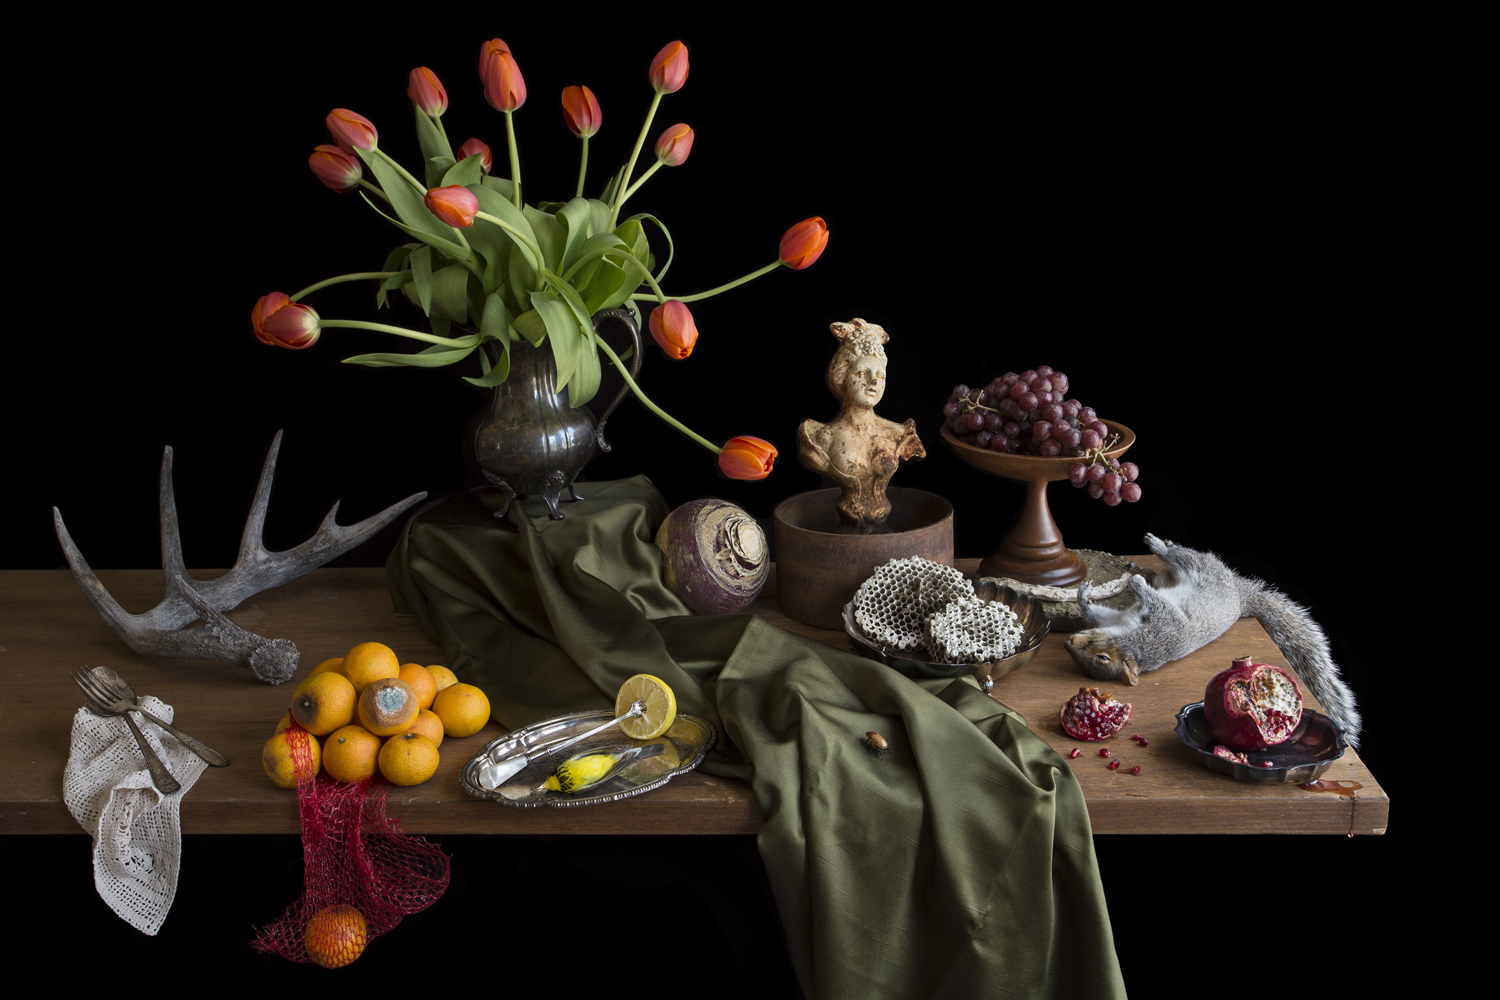 Creative Still Life with Kimberly Witham (Online Learning)